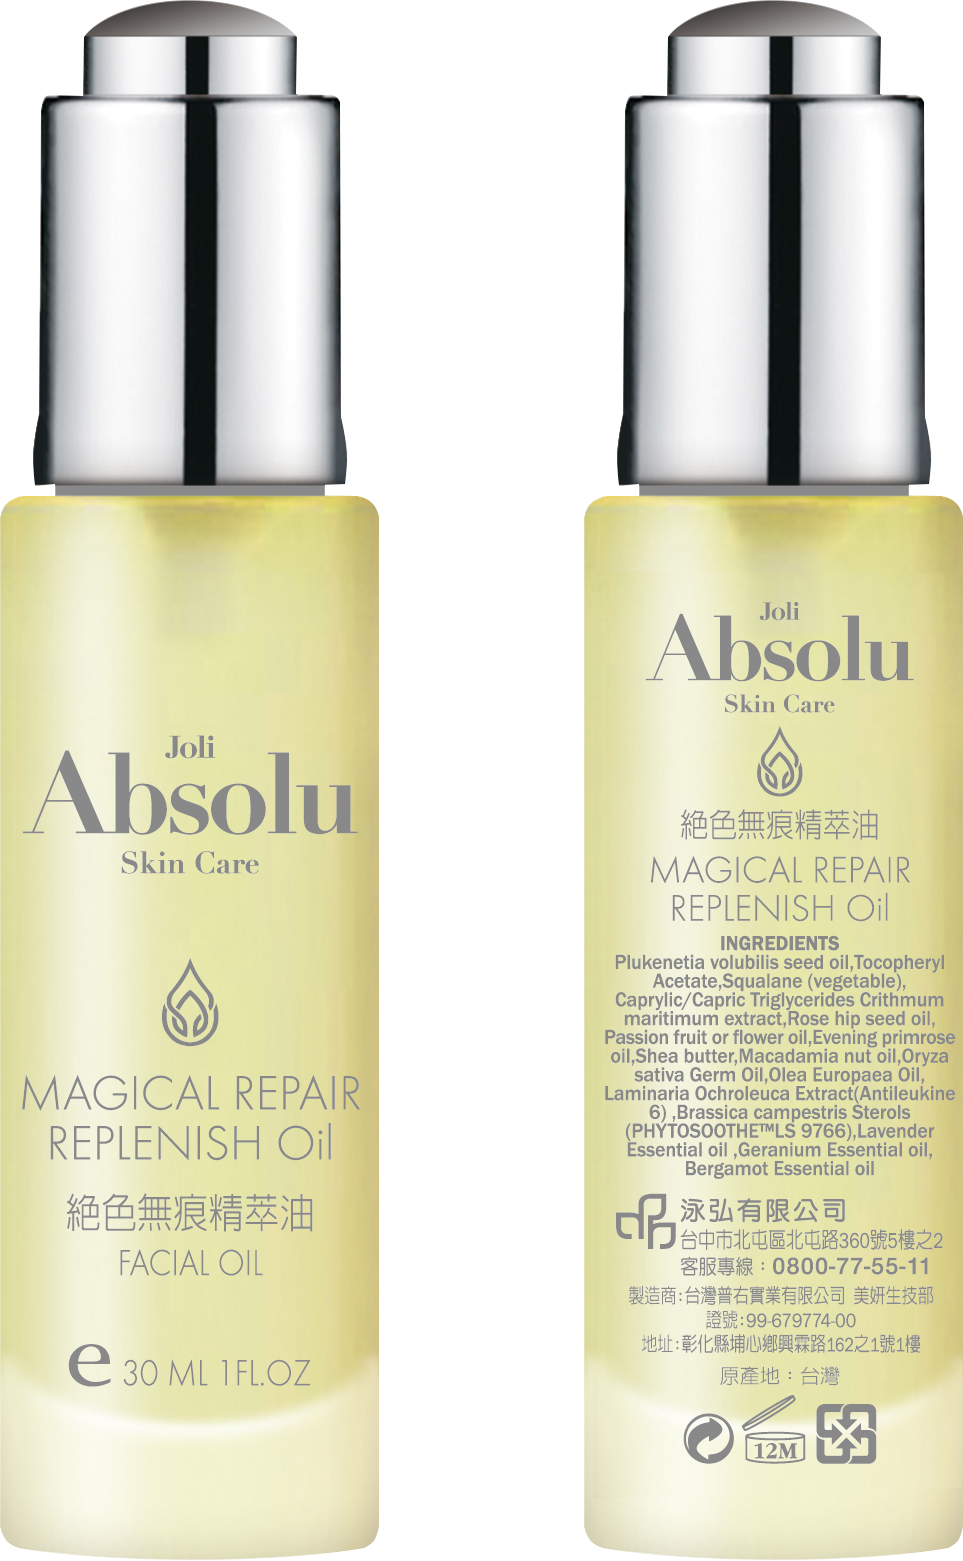 絕色無痕精萃油  MAGICAL REPAIR REPLENISH Oil